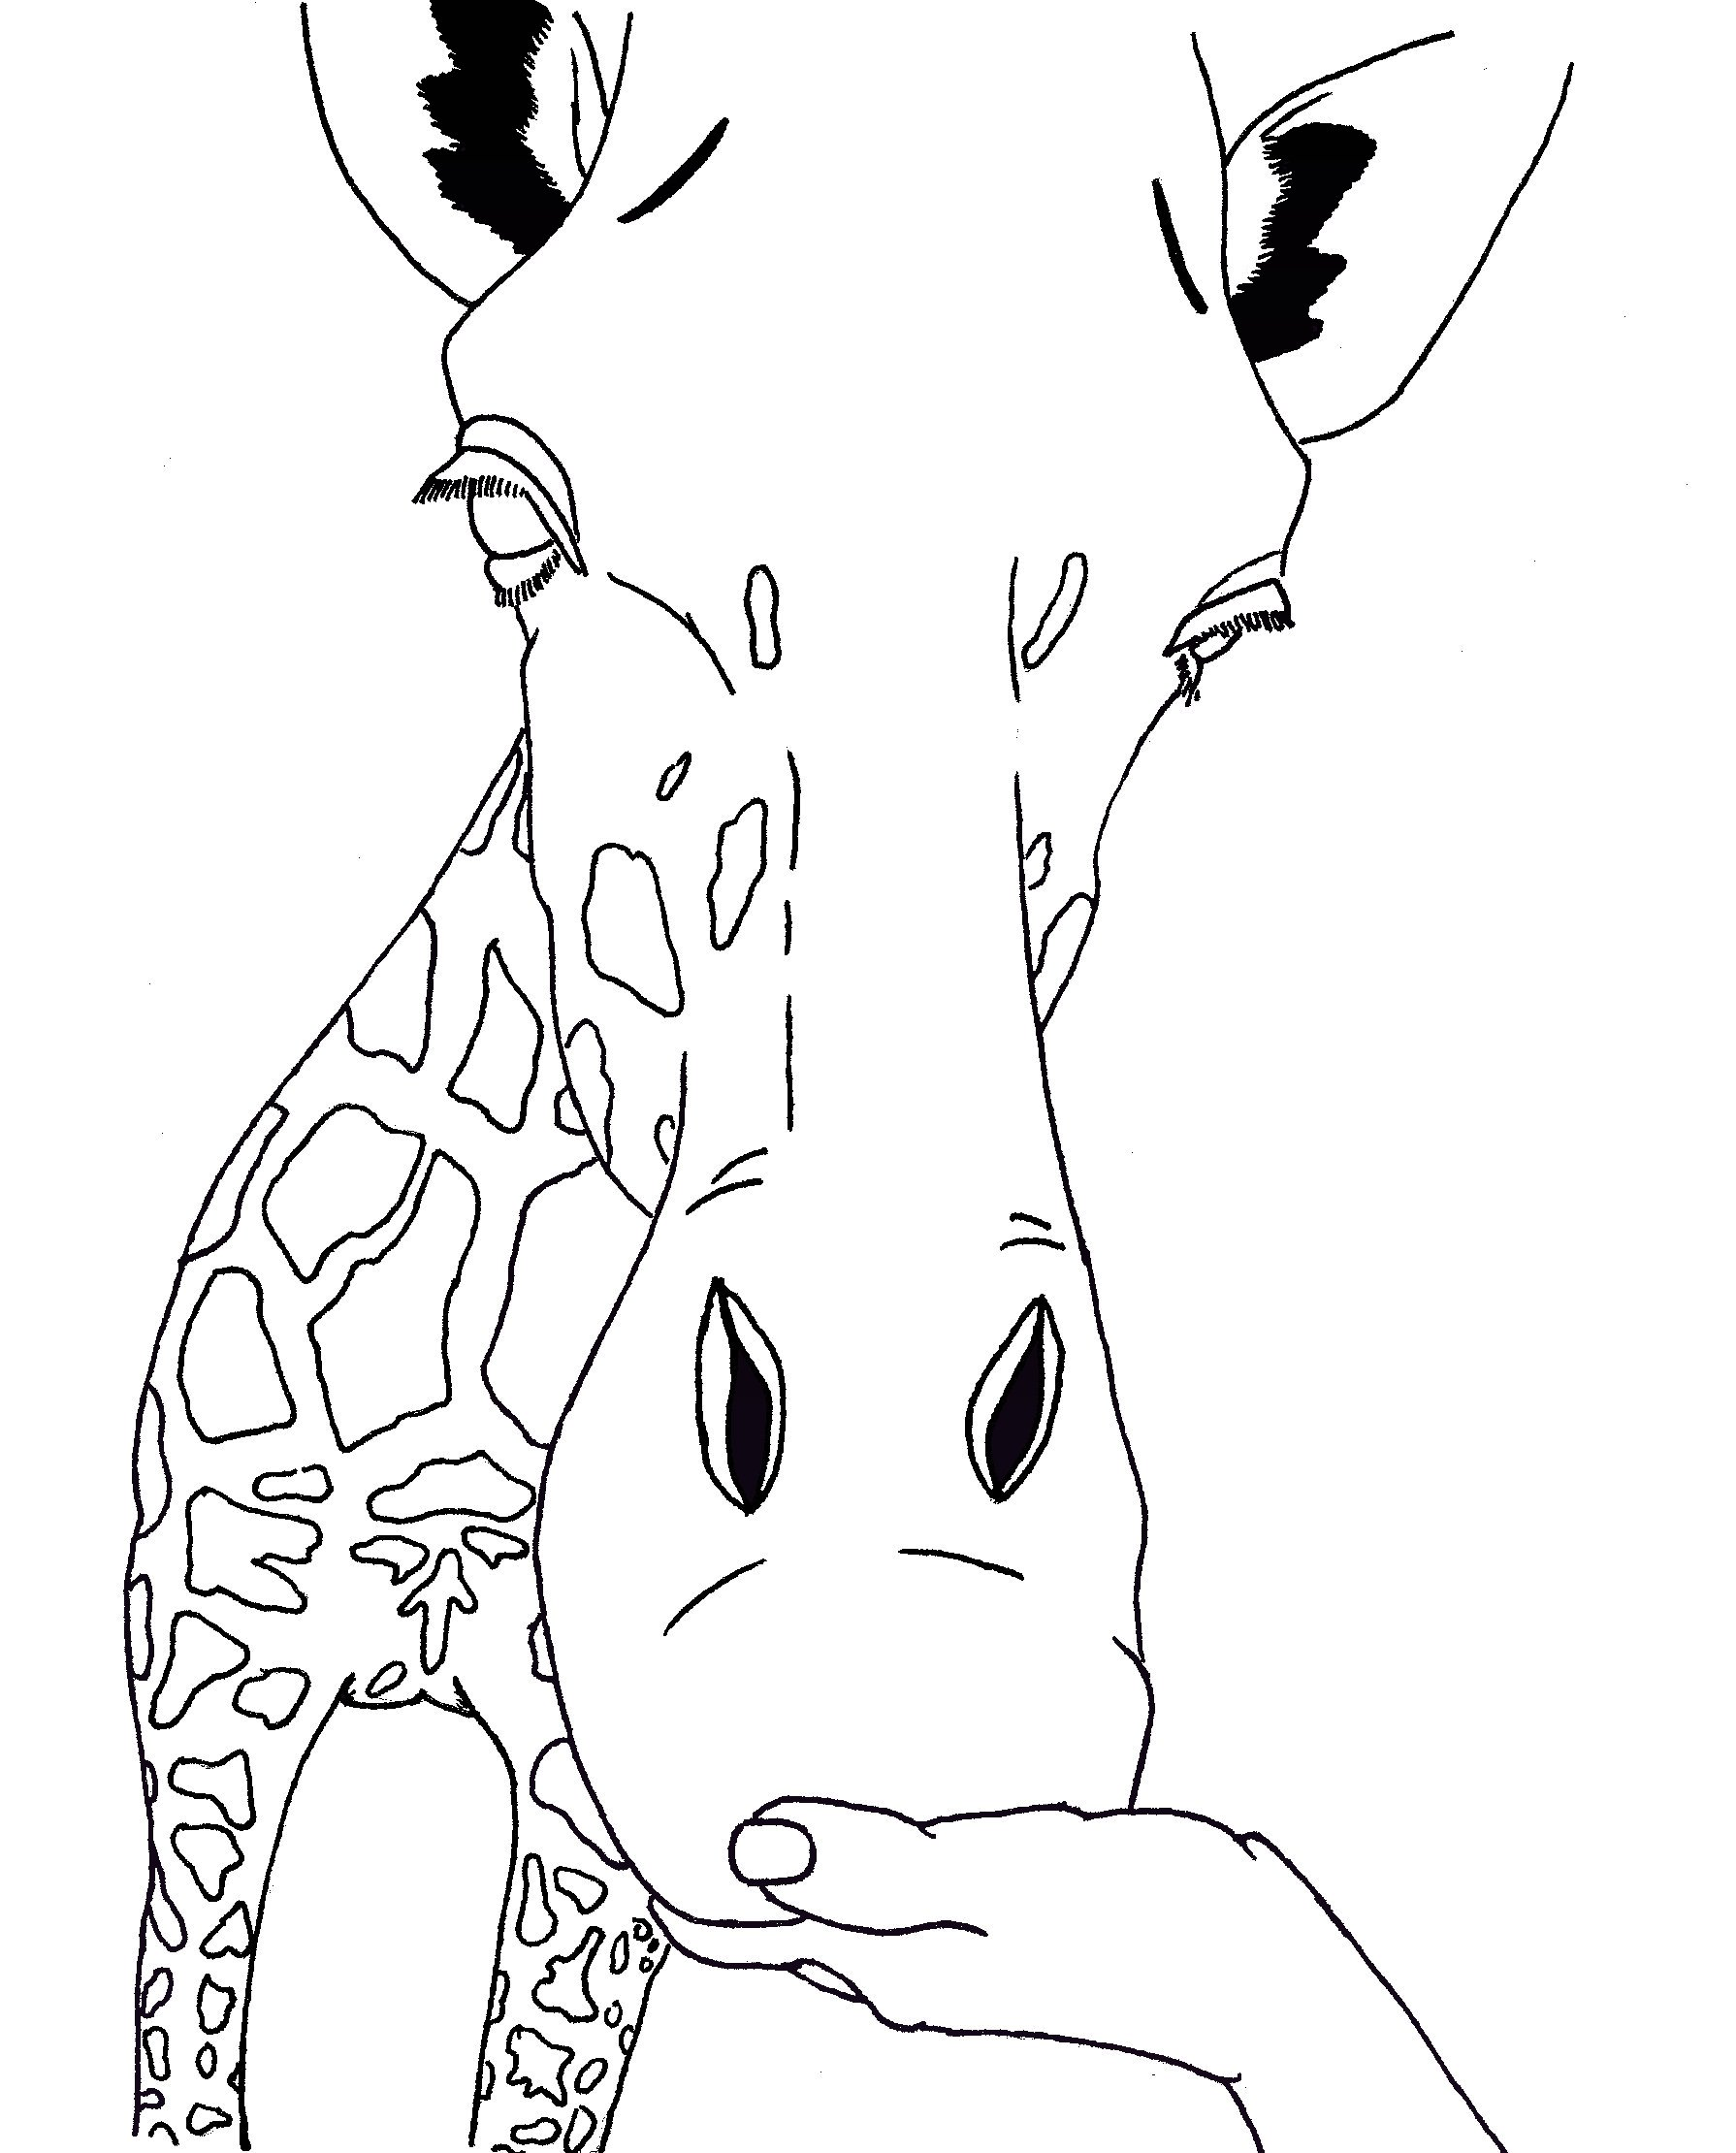 Free Animal Head Outline Giraff Download Free Clip Art Free Clip Art On Clipart Library